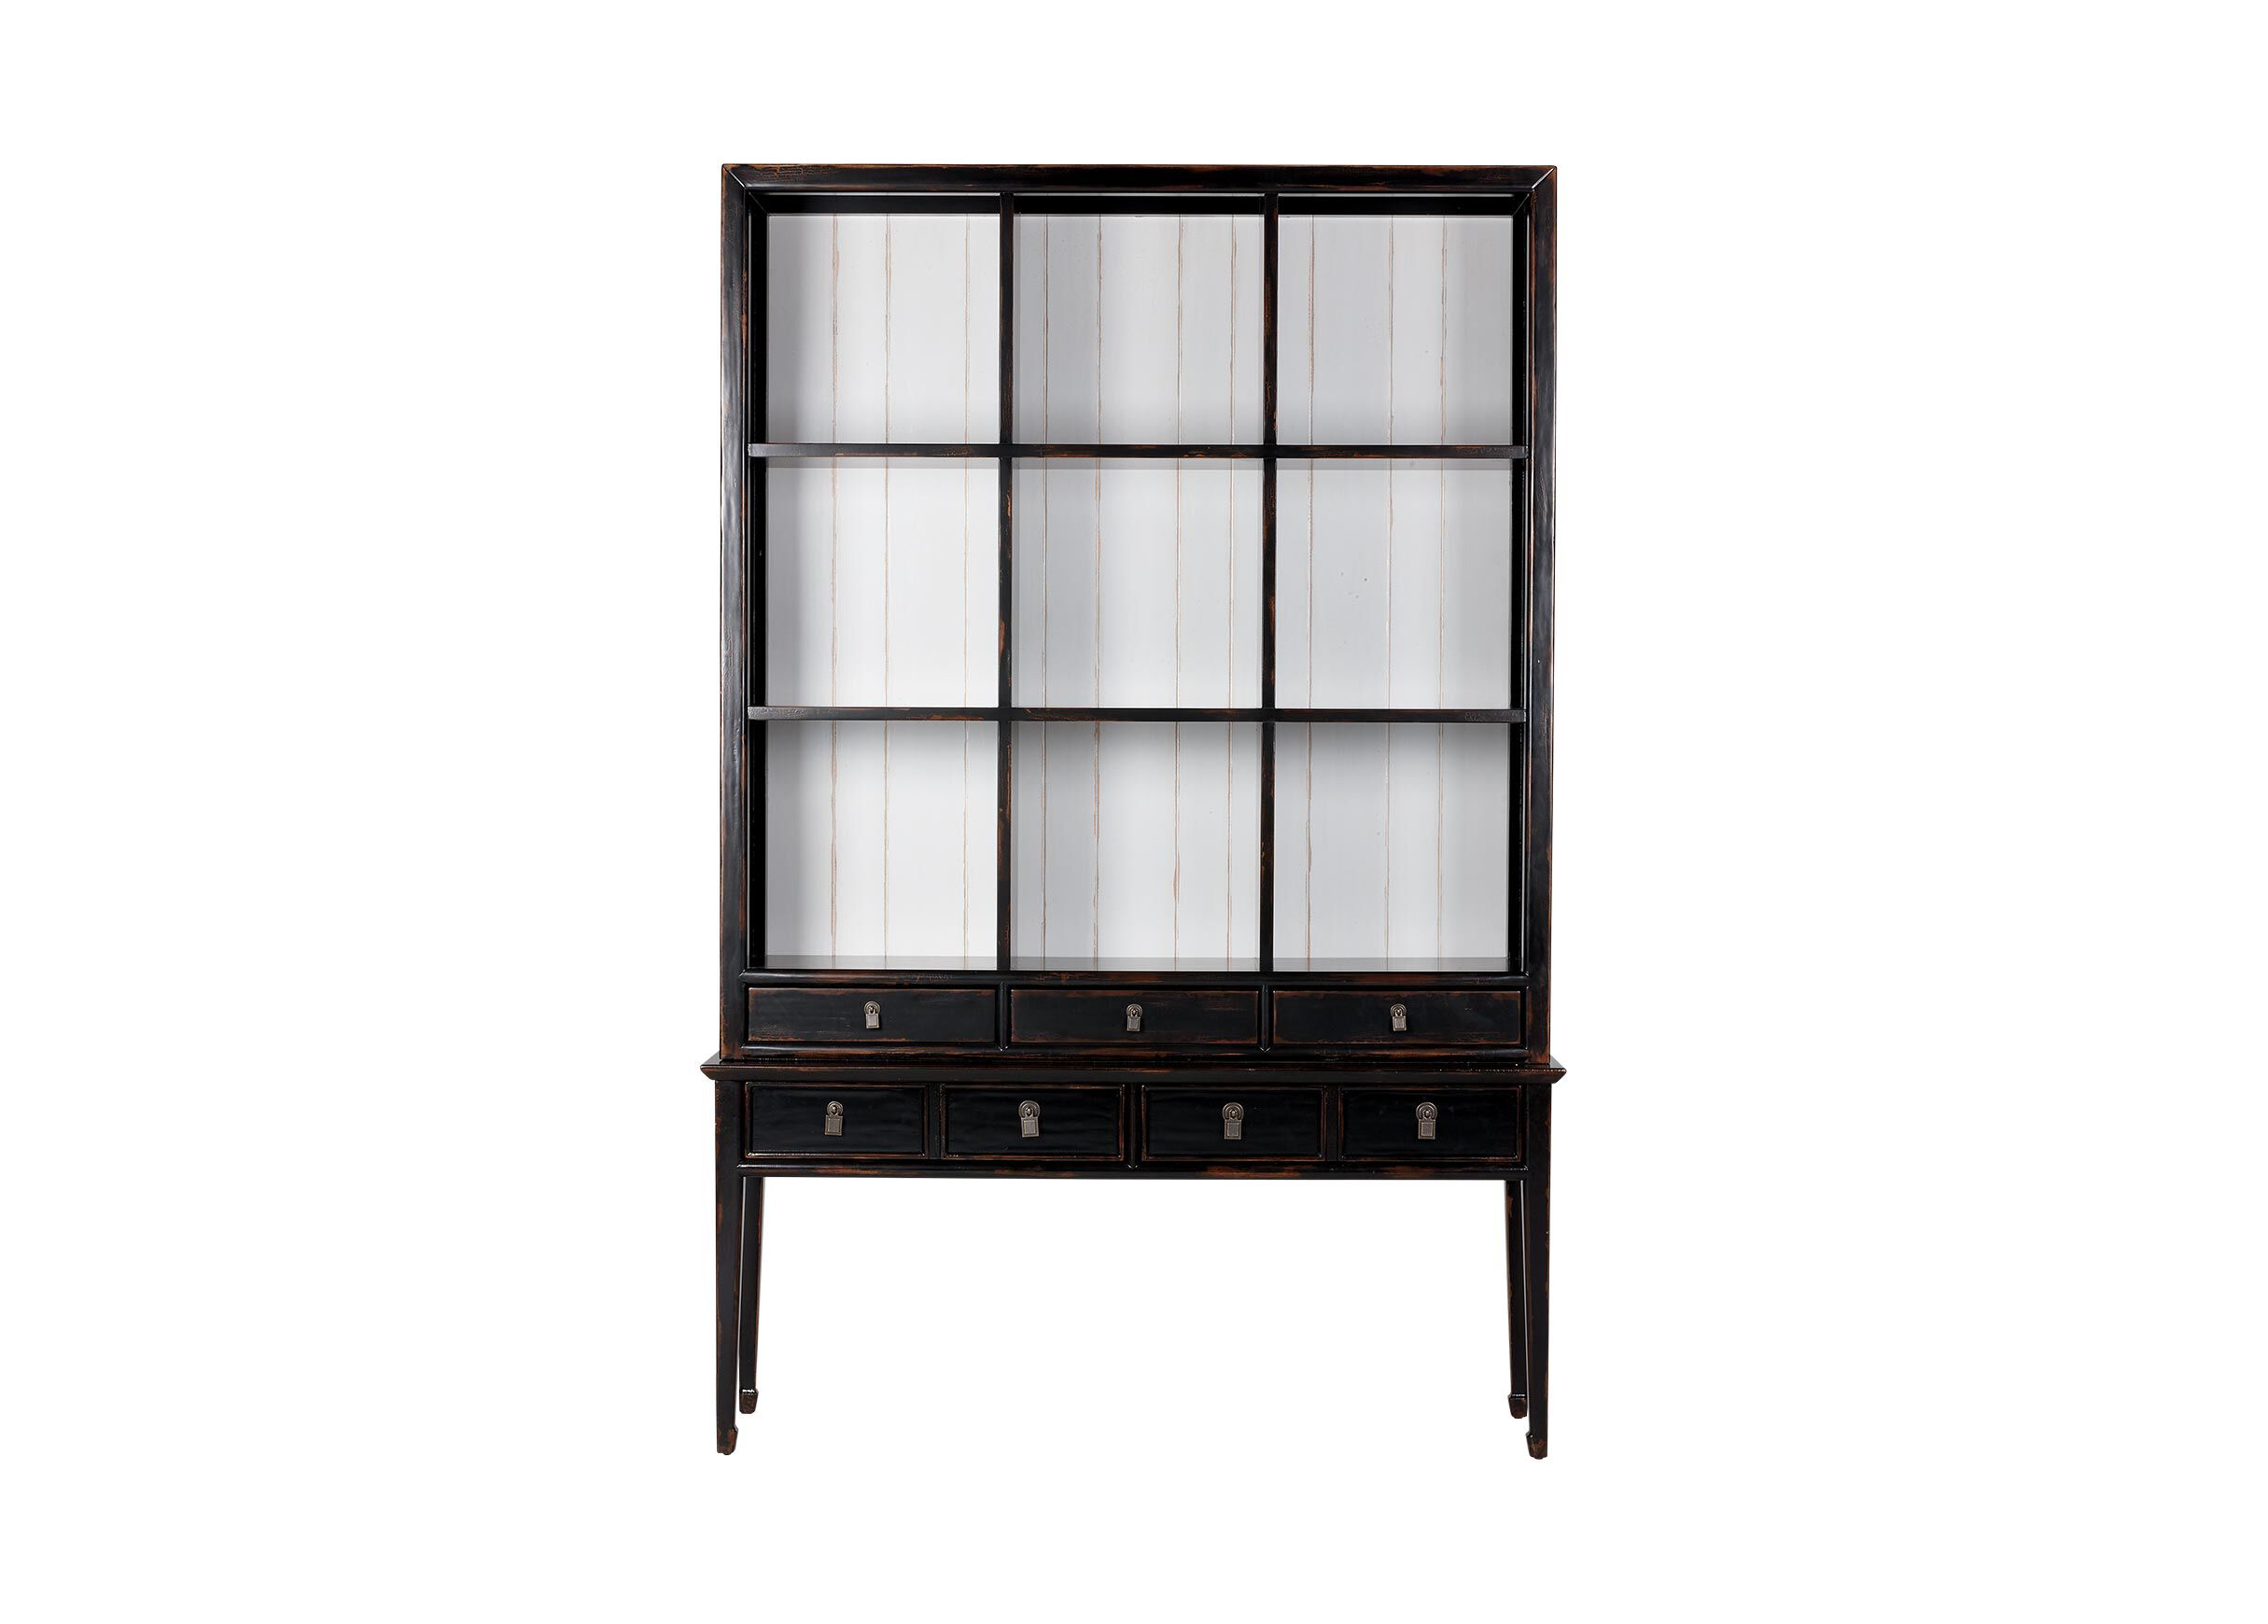 Ming Display Cabinet Storage Display Ethan Allen